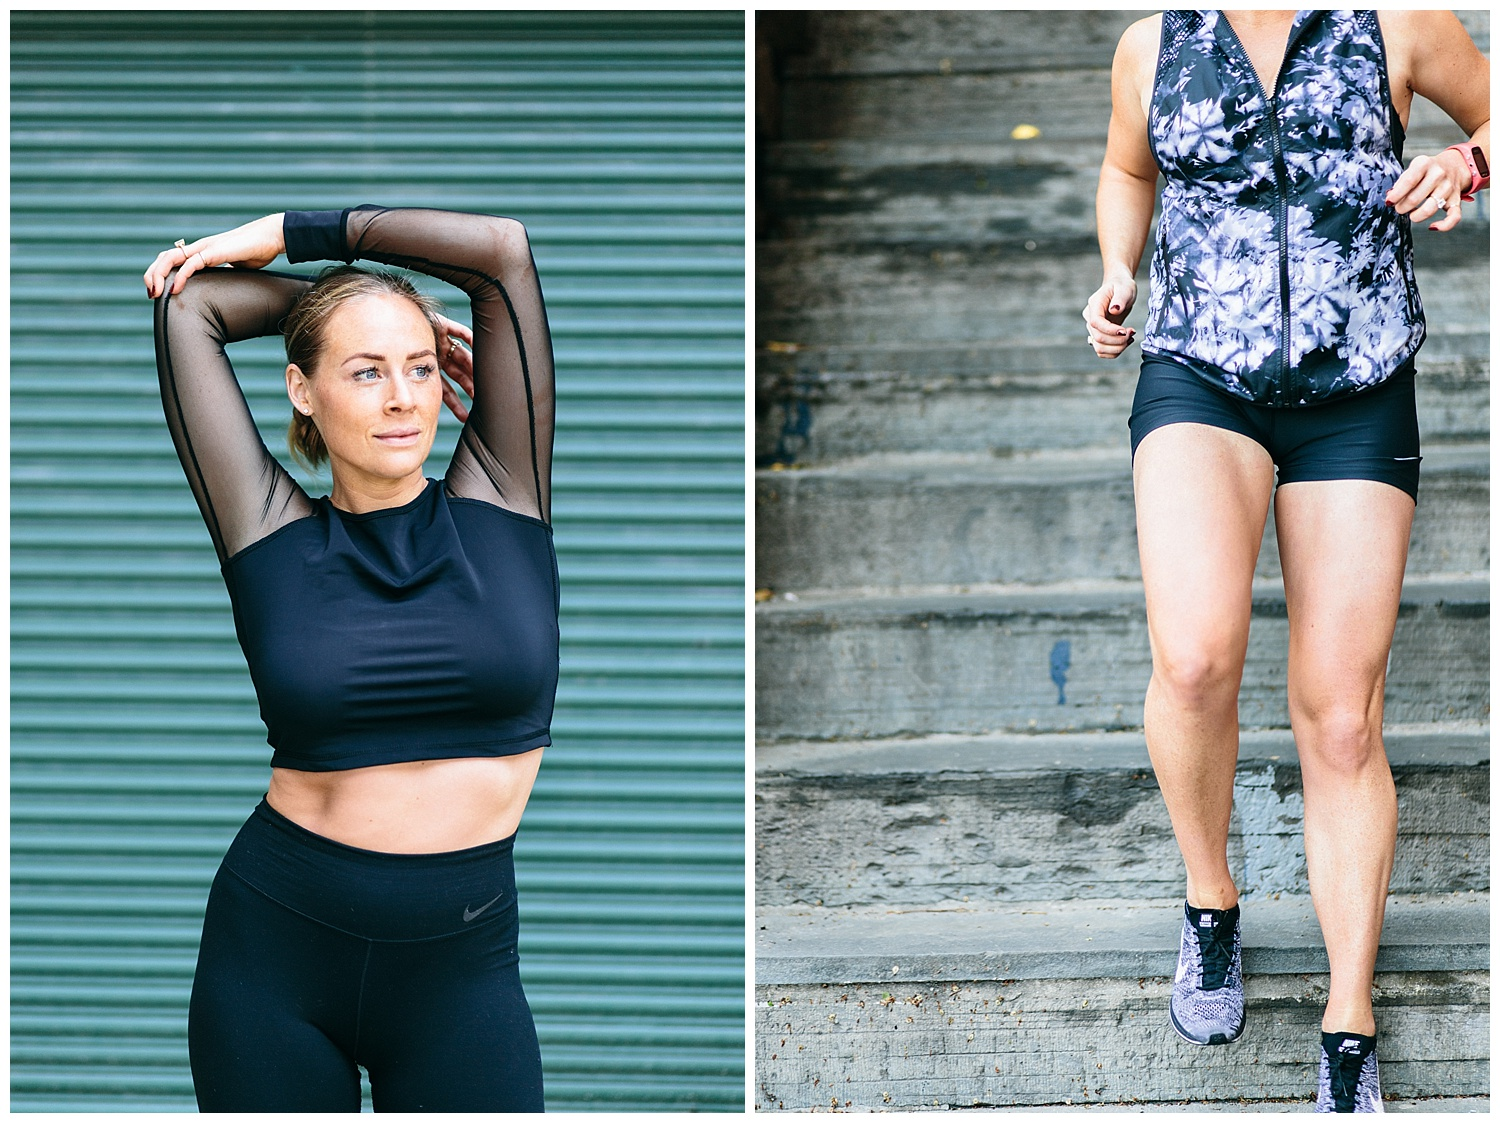 emily-belson-photography-athlete-shoot-paige-09.jpg